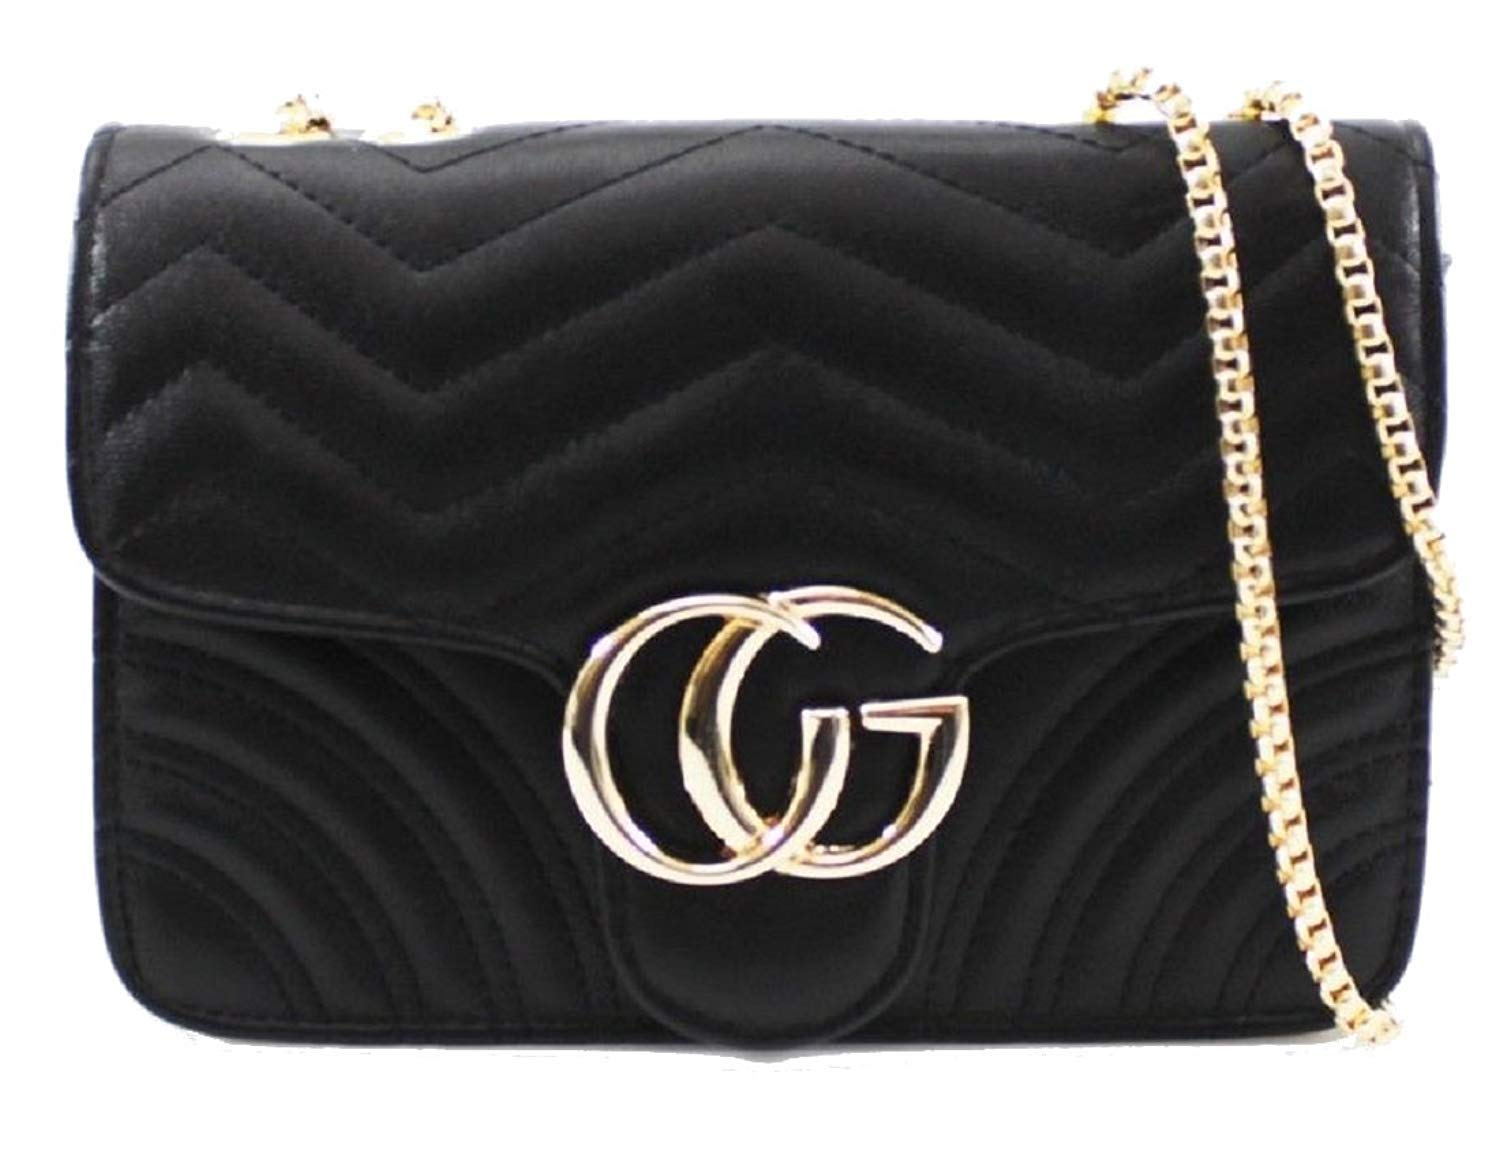 gucci handbag amazon co ukquilted faux leather chevron zig zag shoulder clutch bag evening cross body with gold chain strap